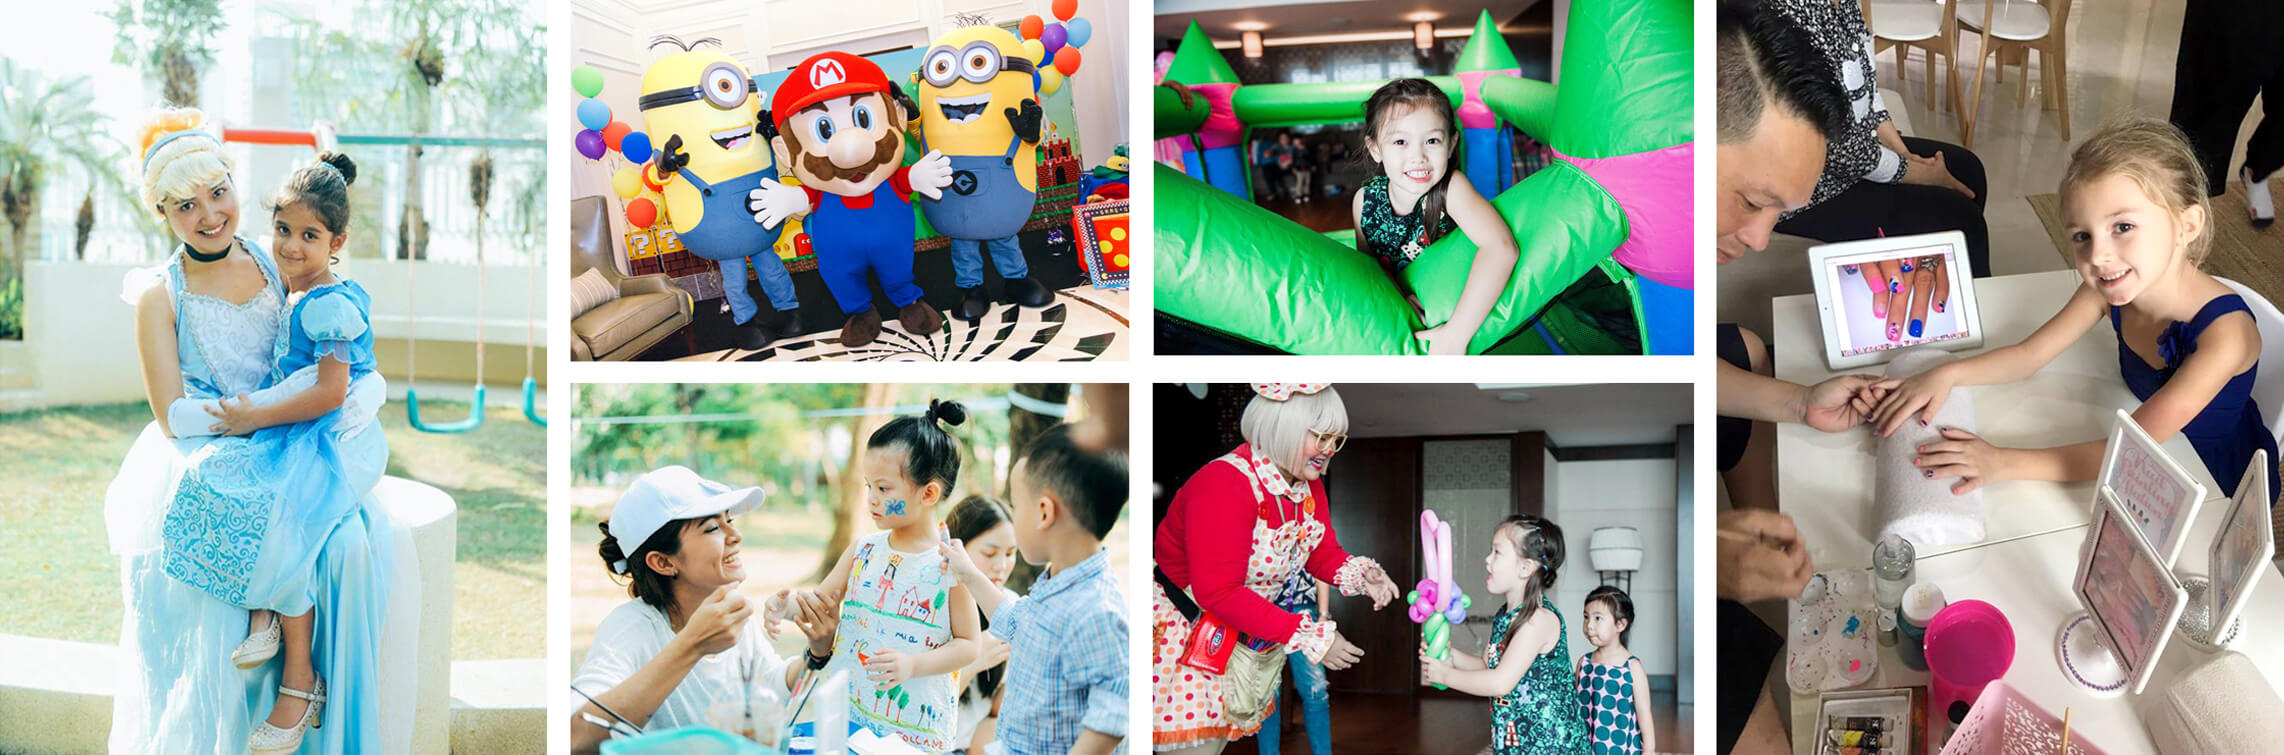 ENTERTAINMENTS & ACTIVITIES